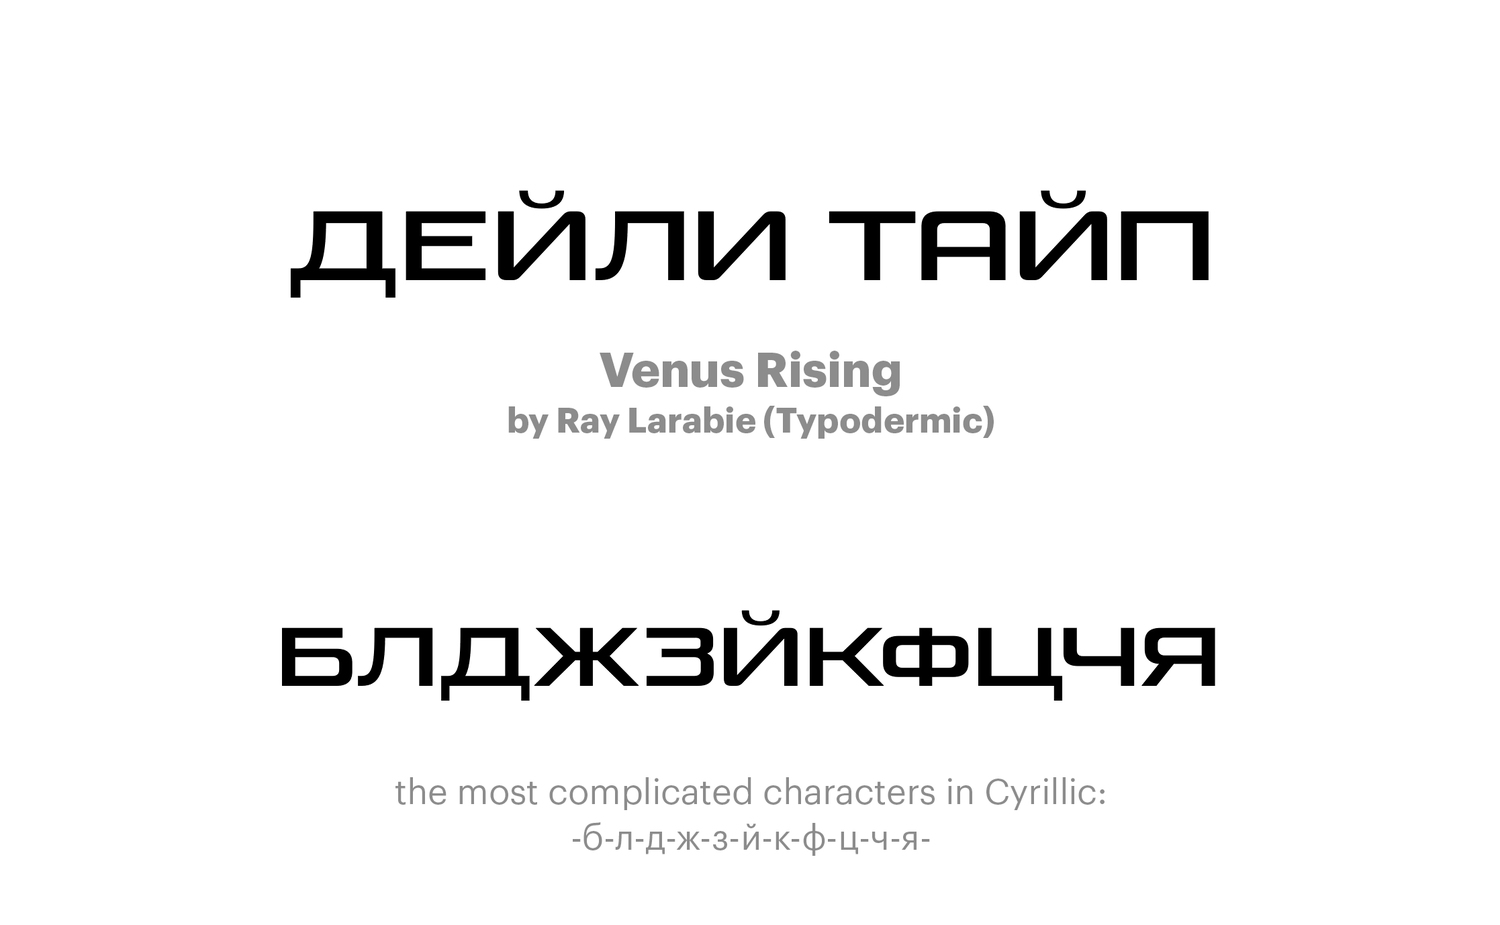 Venus-Rising-by-Ray-Larabie-(Typodermic)